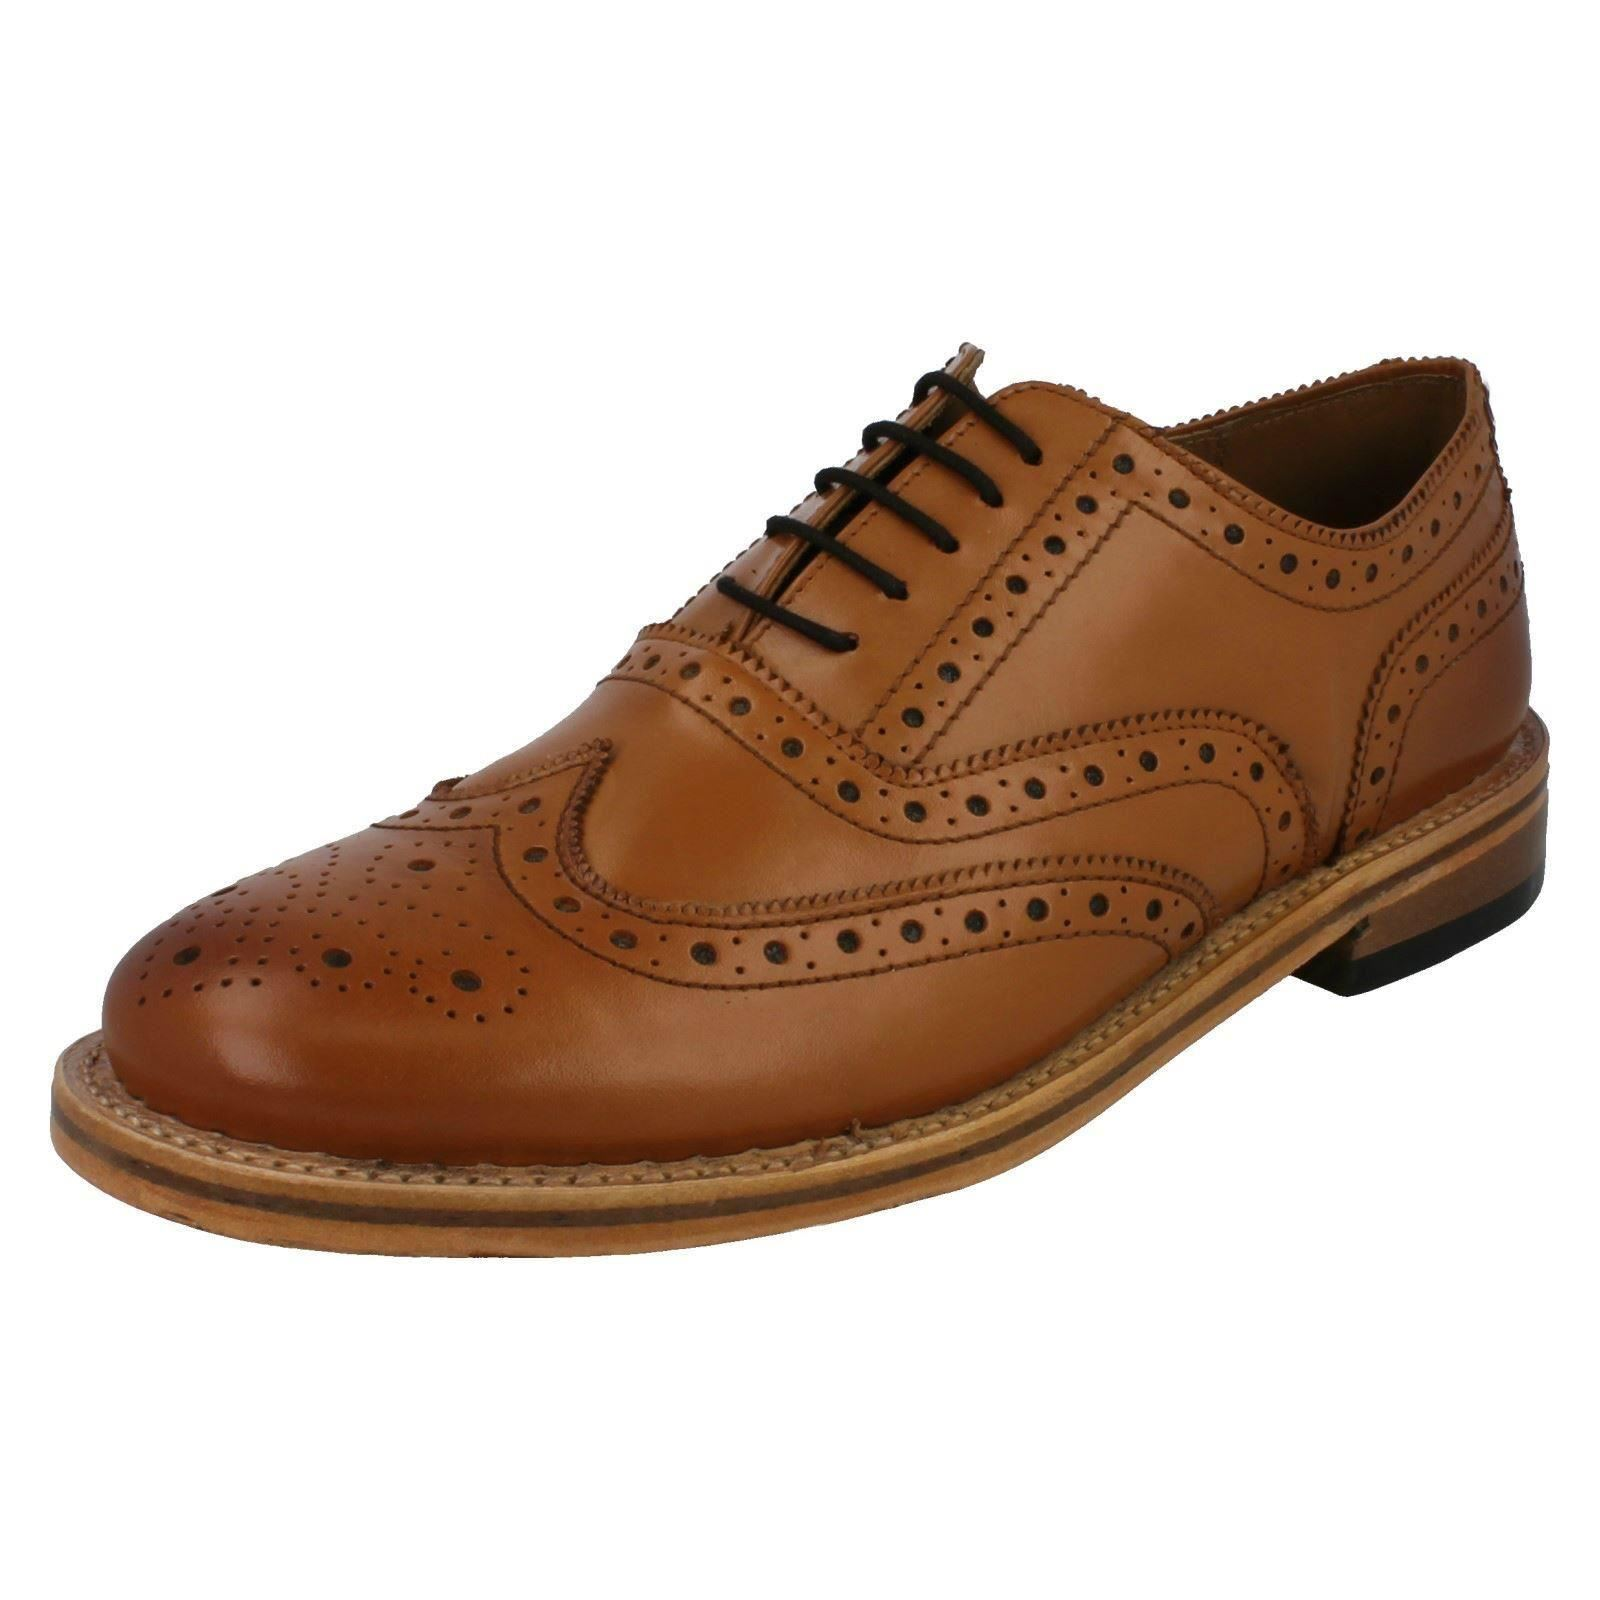 MENS CATESBY LEATHER LACE UP SMART FORMAL BROGUES SHOES MCATES/0310T